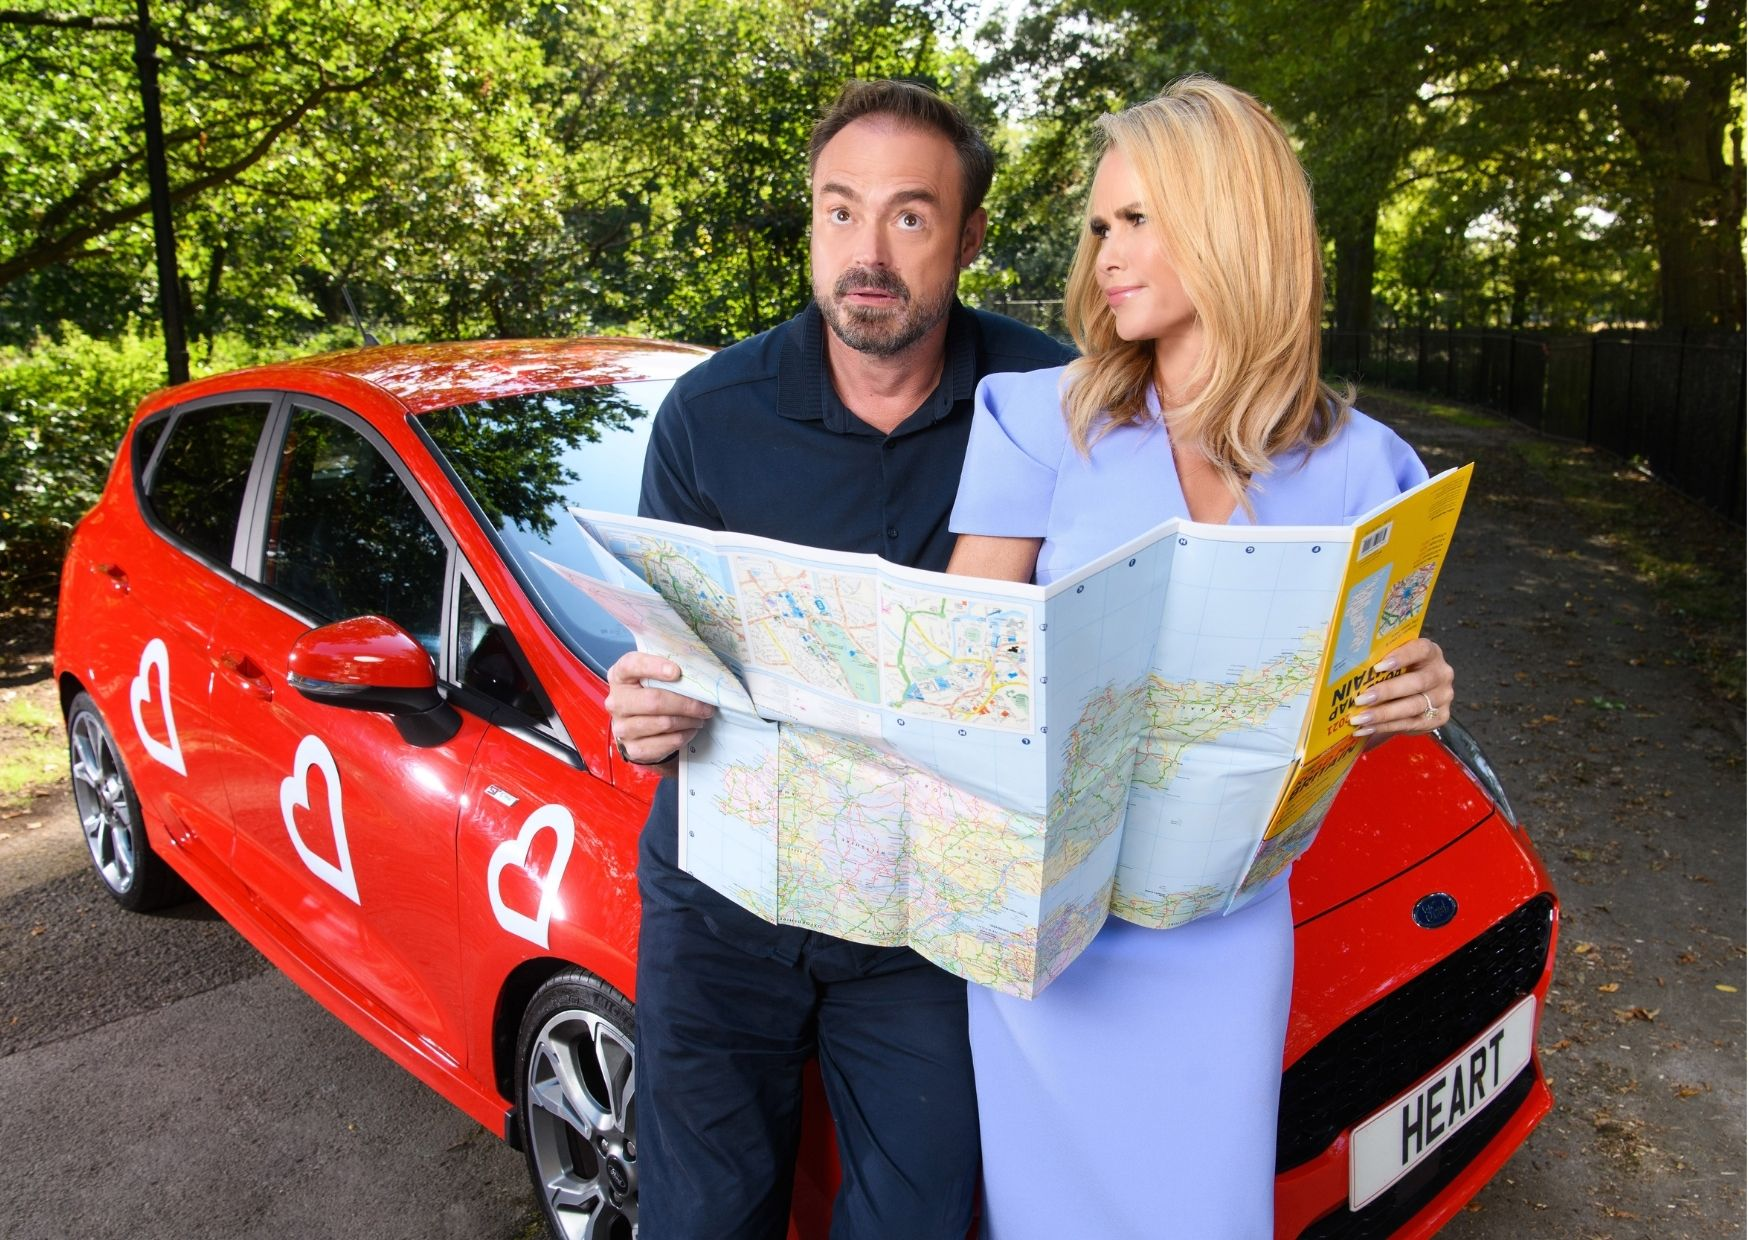 Win a car with Jamie Theakston and Amanda Holden